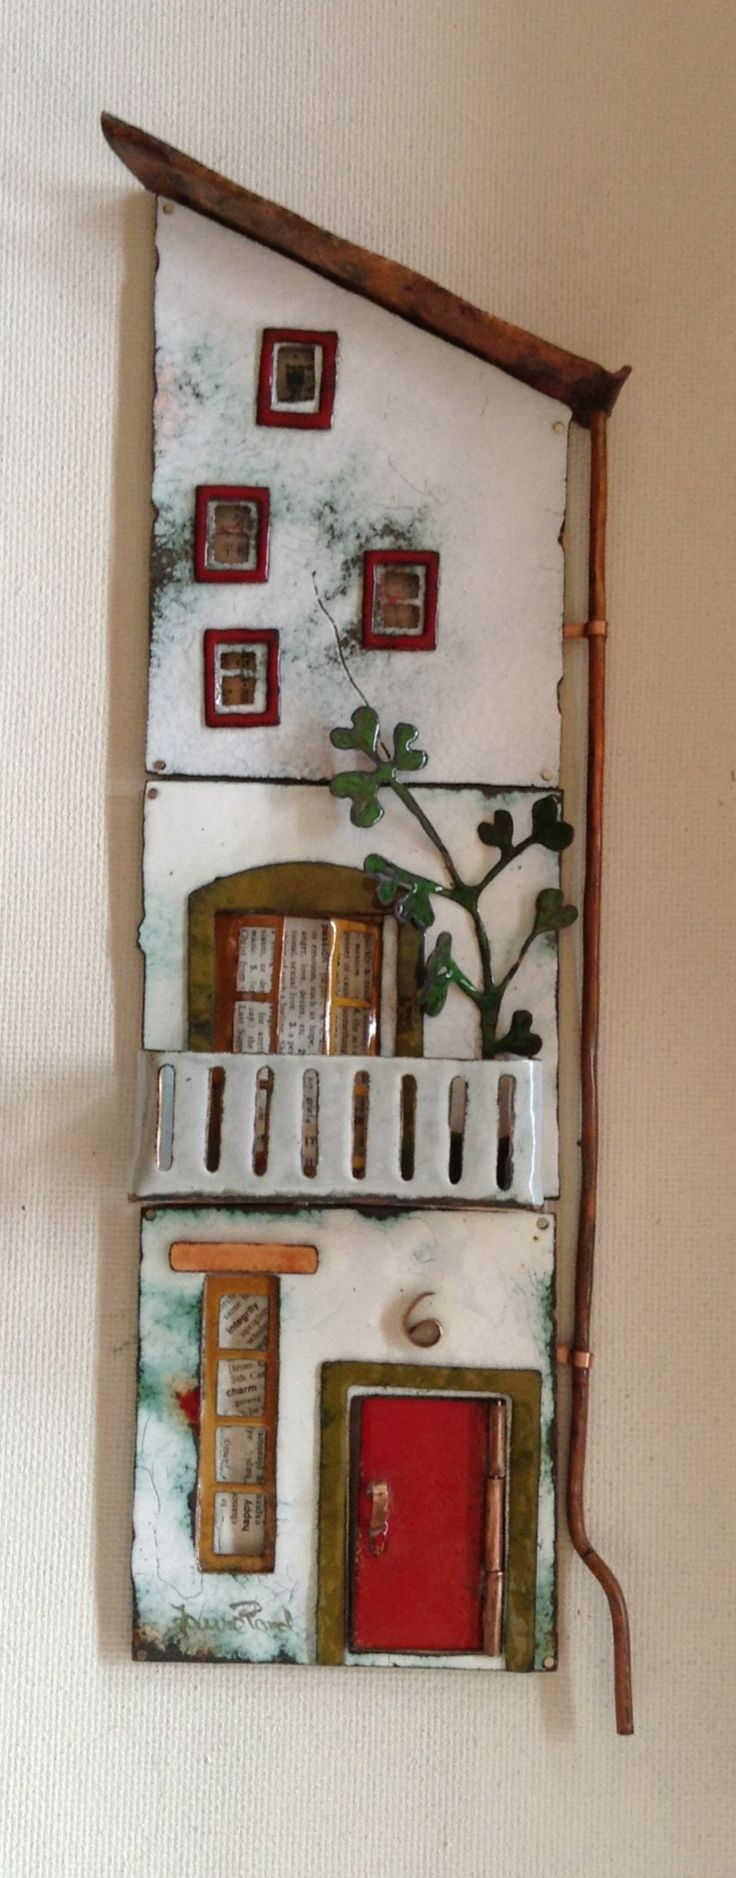 Vitreous enamel on copper. 33 x 9 cm. Janne Pond. Facebook: My Secret Pond. Spanish art concentration idea